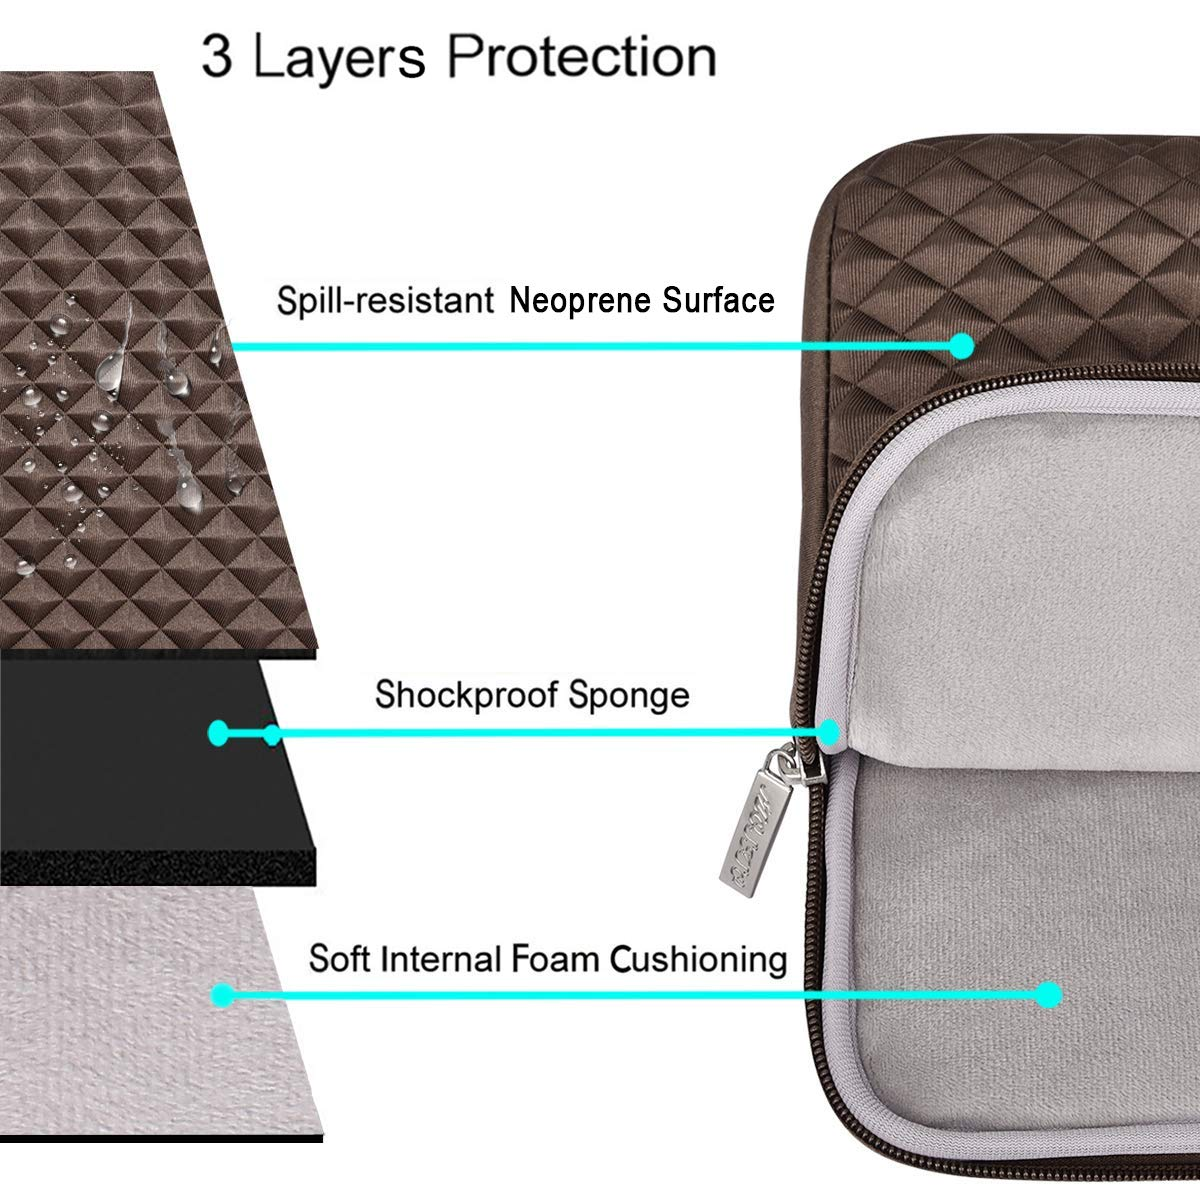 Notebook with Small Case Black MOSISO Shock Resistant Diamond Foam Water Repellent Neoprene Laptop Sleeve Cover Bag Compatible 13-13.3 Inch MacBook Pro//Air